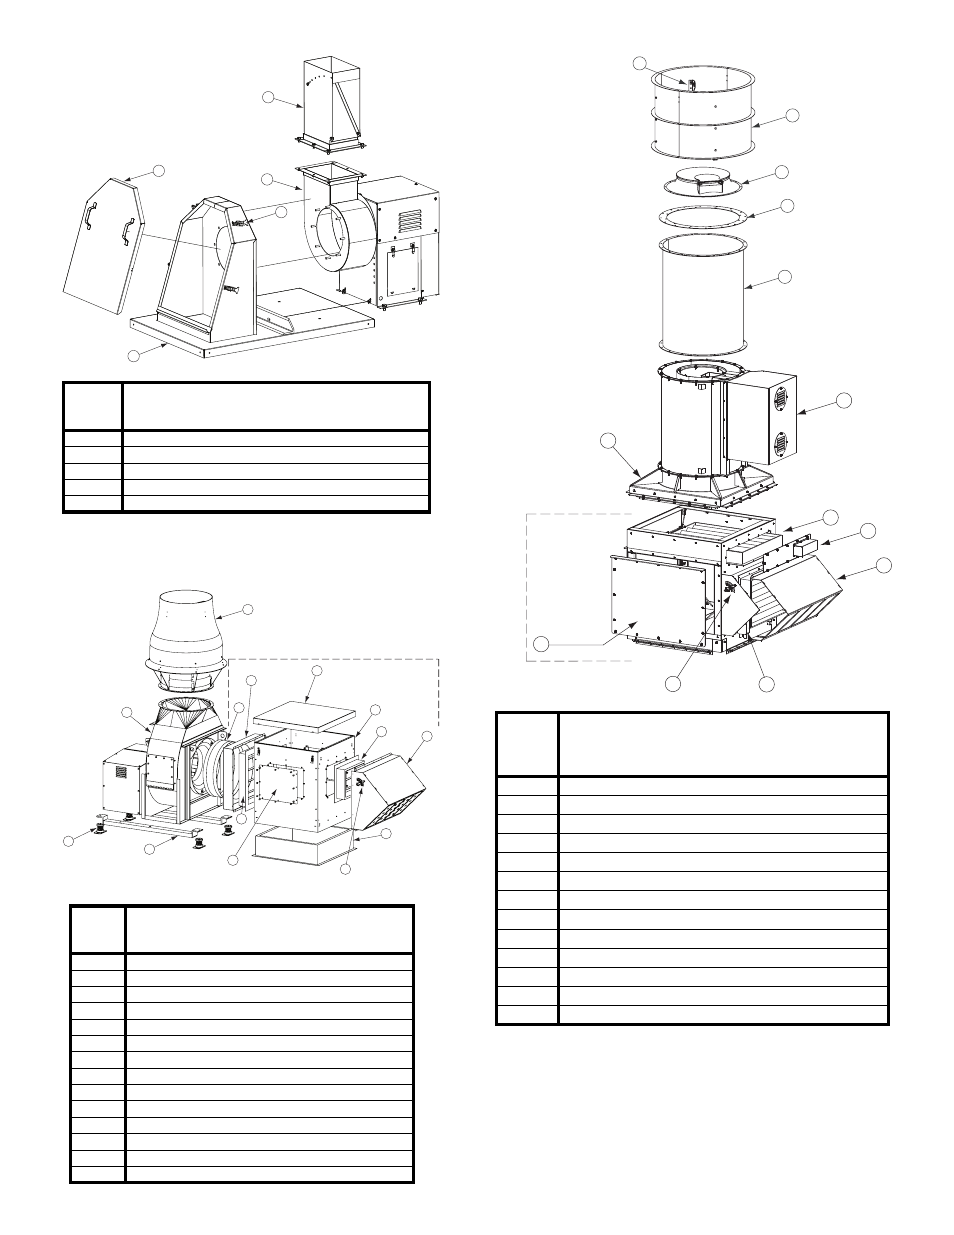 cook laboratory exhaust user manual